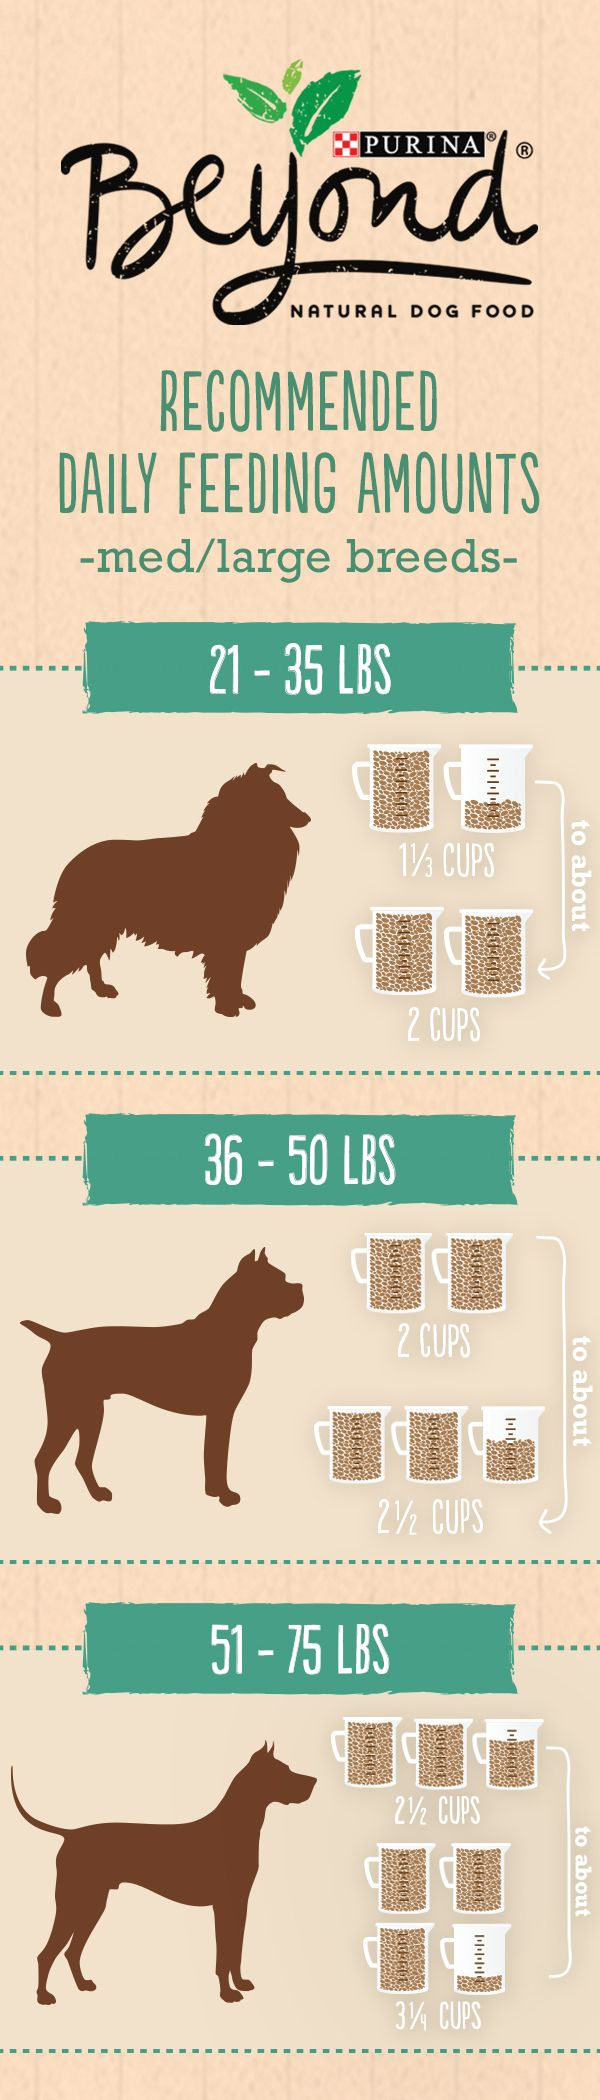 How to determine the right amount of Beyond Natural Dry Pet Food for your medium to large dog: begin with the recommended amount provided for your specific recipe. Then adjust your healthy dog food to maintain ideal body condition, depending on factors like your dog's age and activity level.